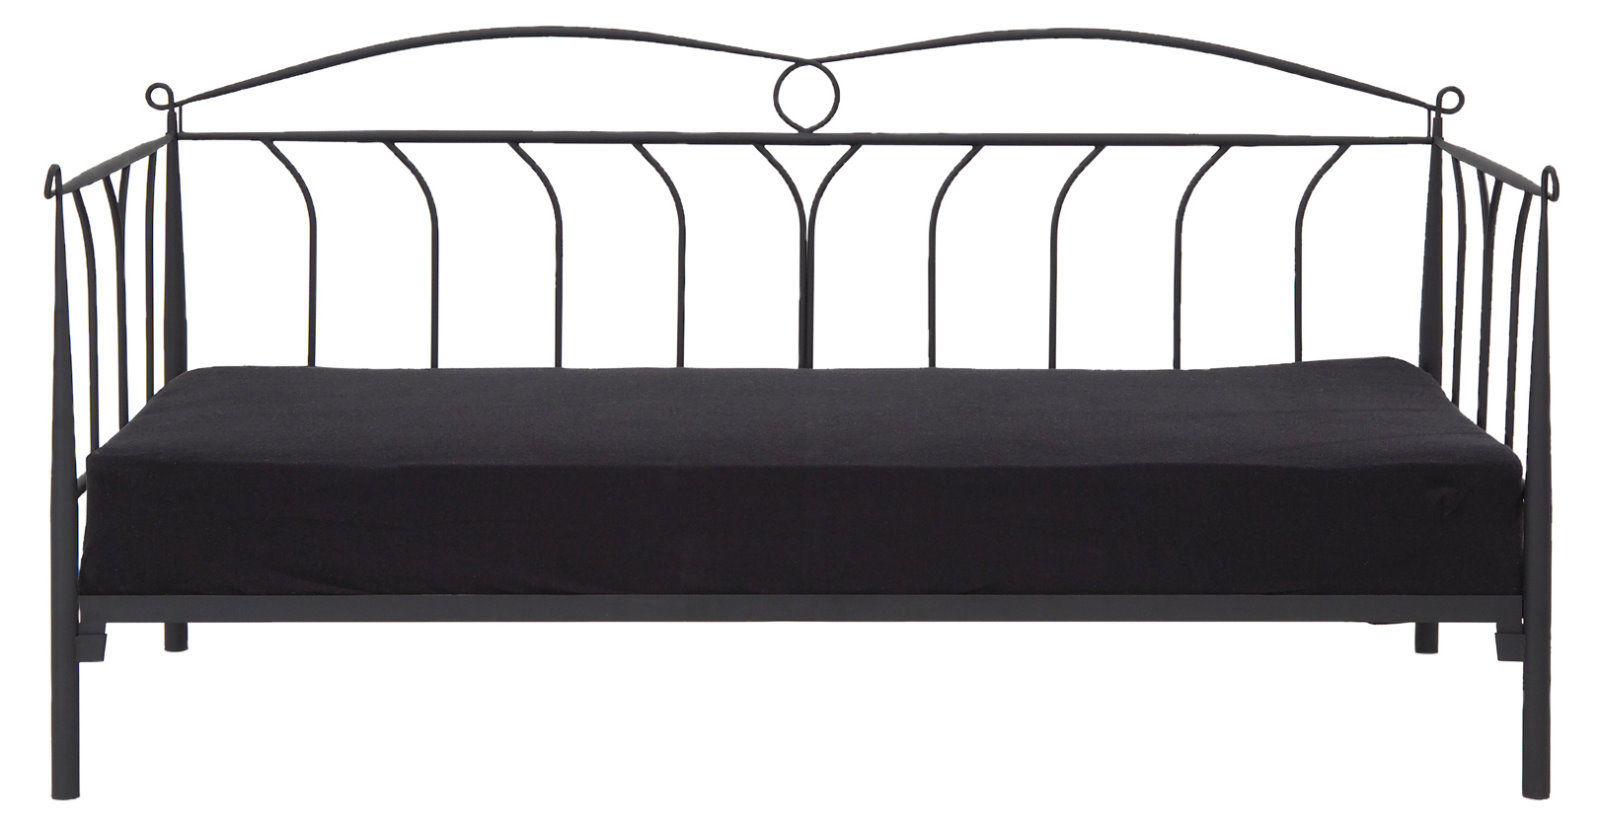 pkline metallbett schwarz 90x200 bett jugendbett kinderbett tagesbett sofa ebay. Black Bedroom Furniture Sets. Home Design Ideas